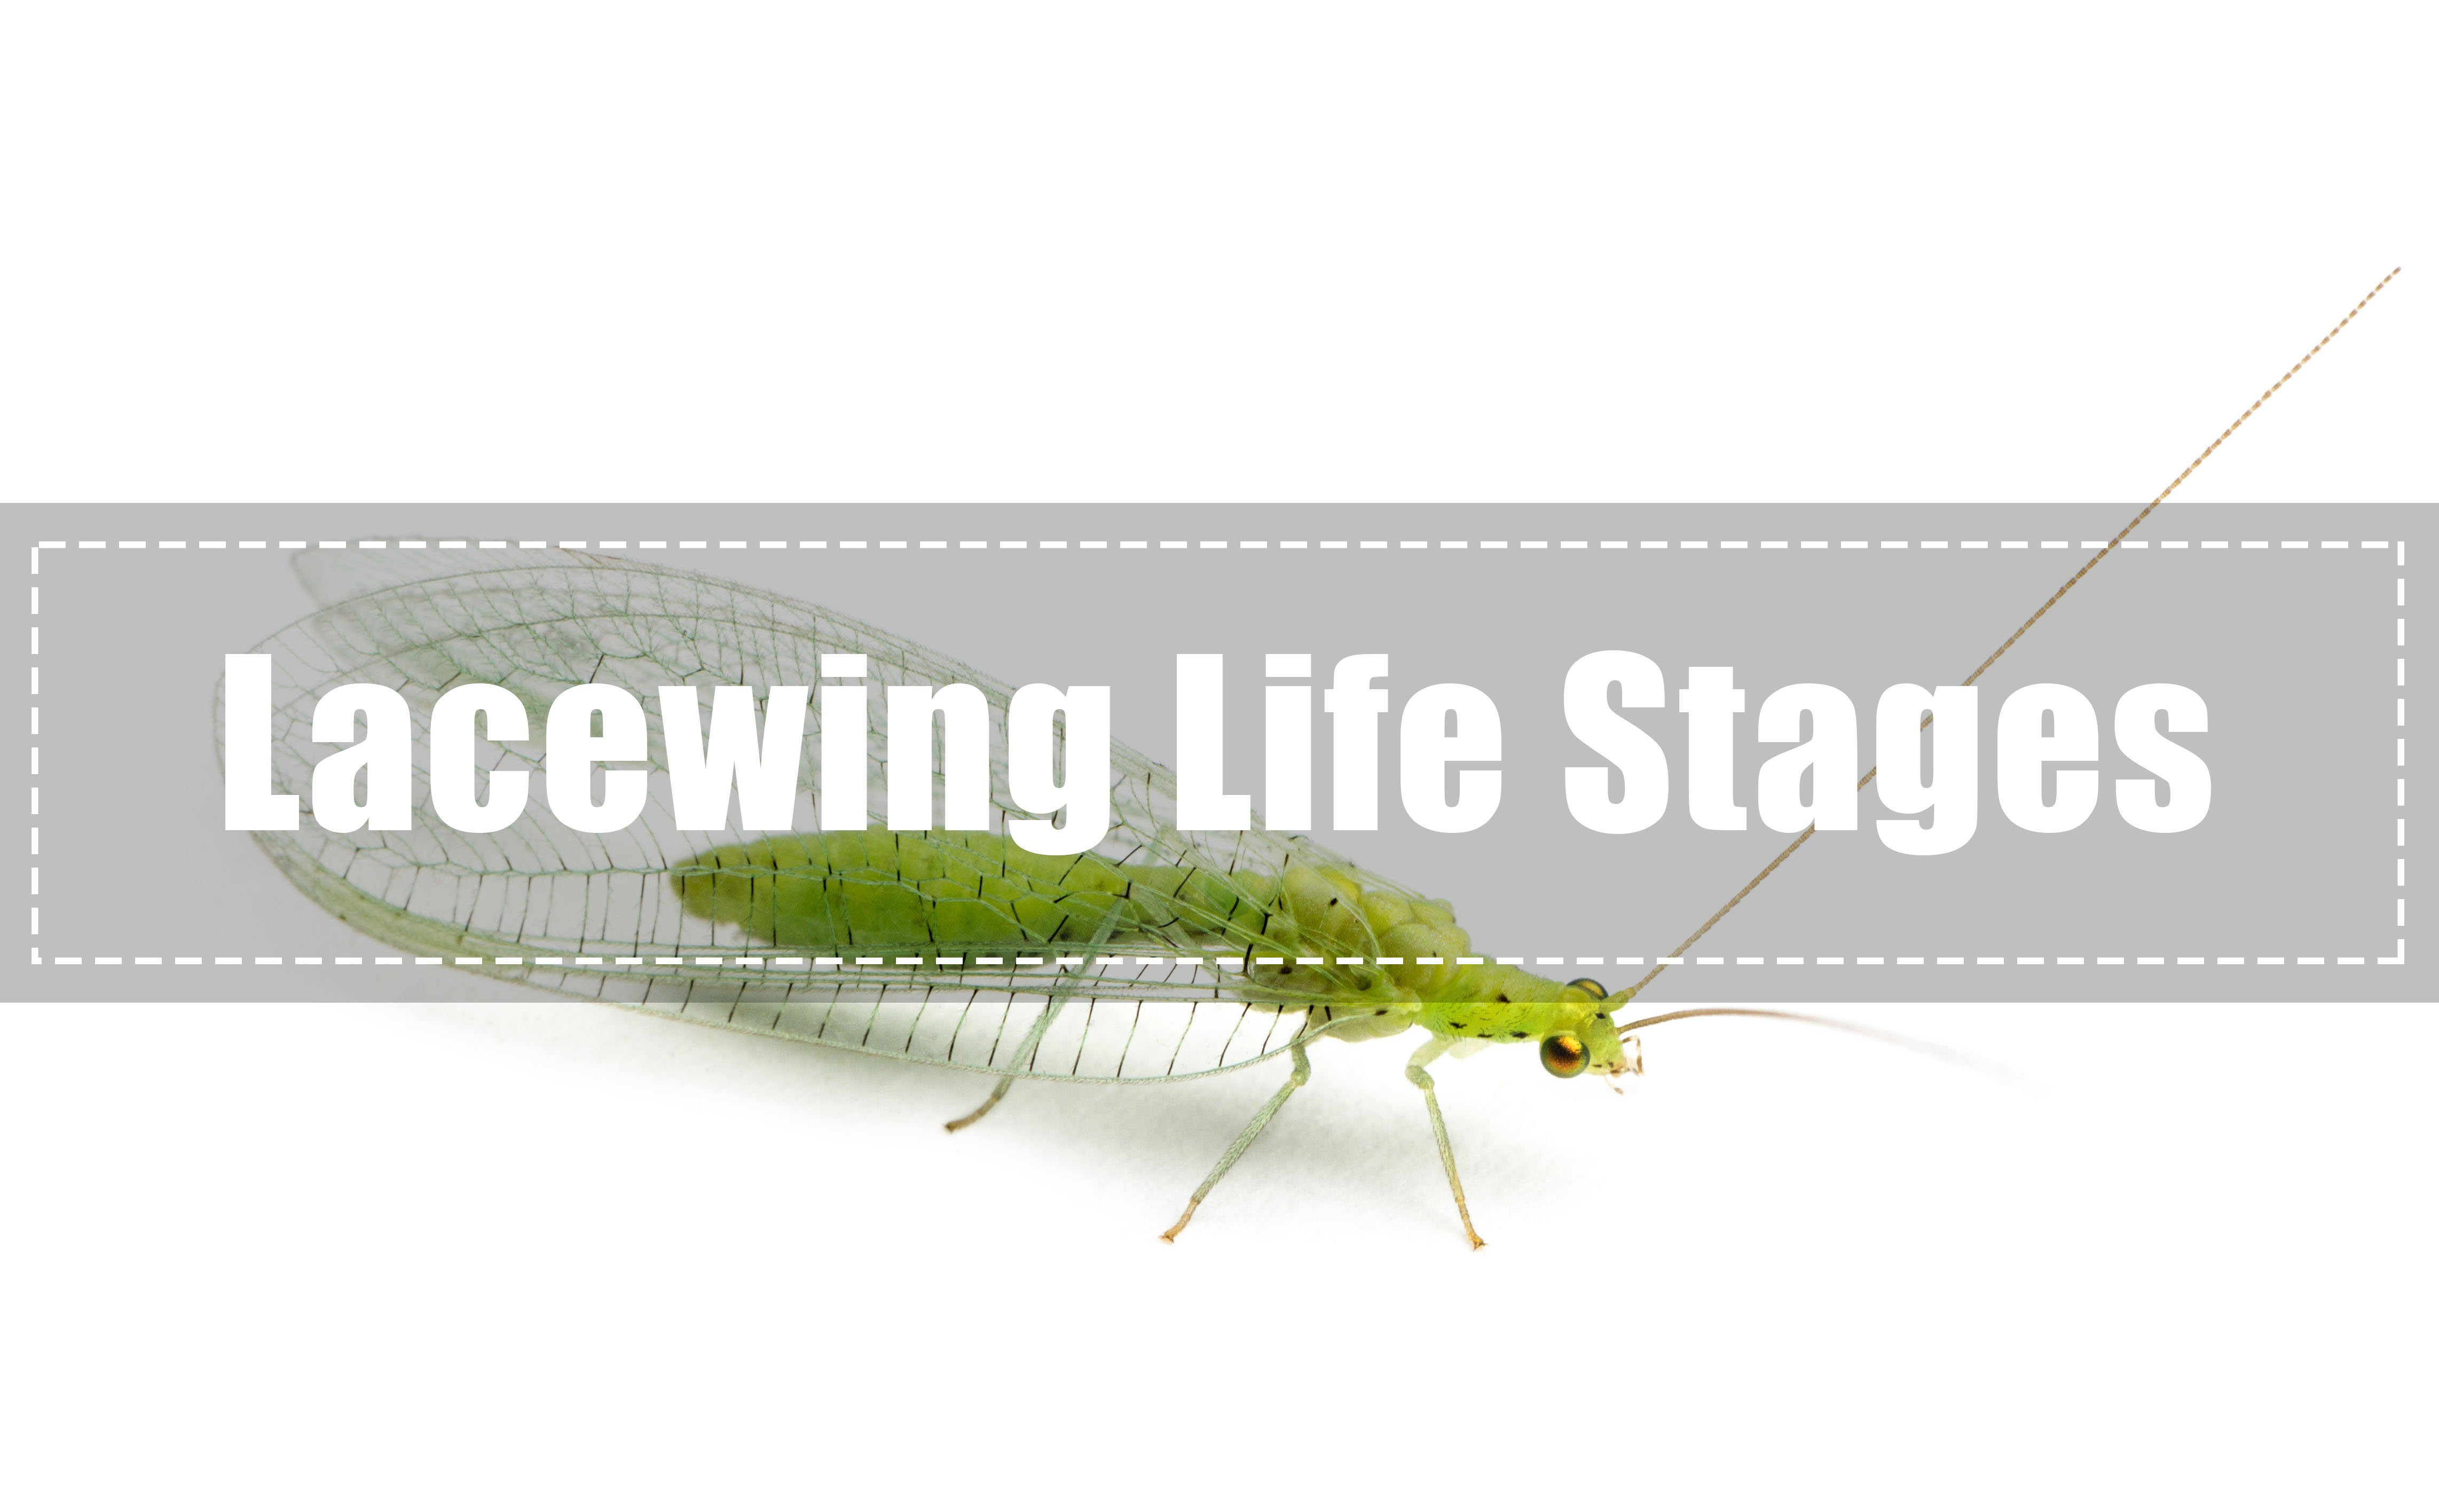 Lacewing Life Stages